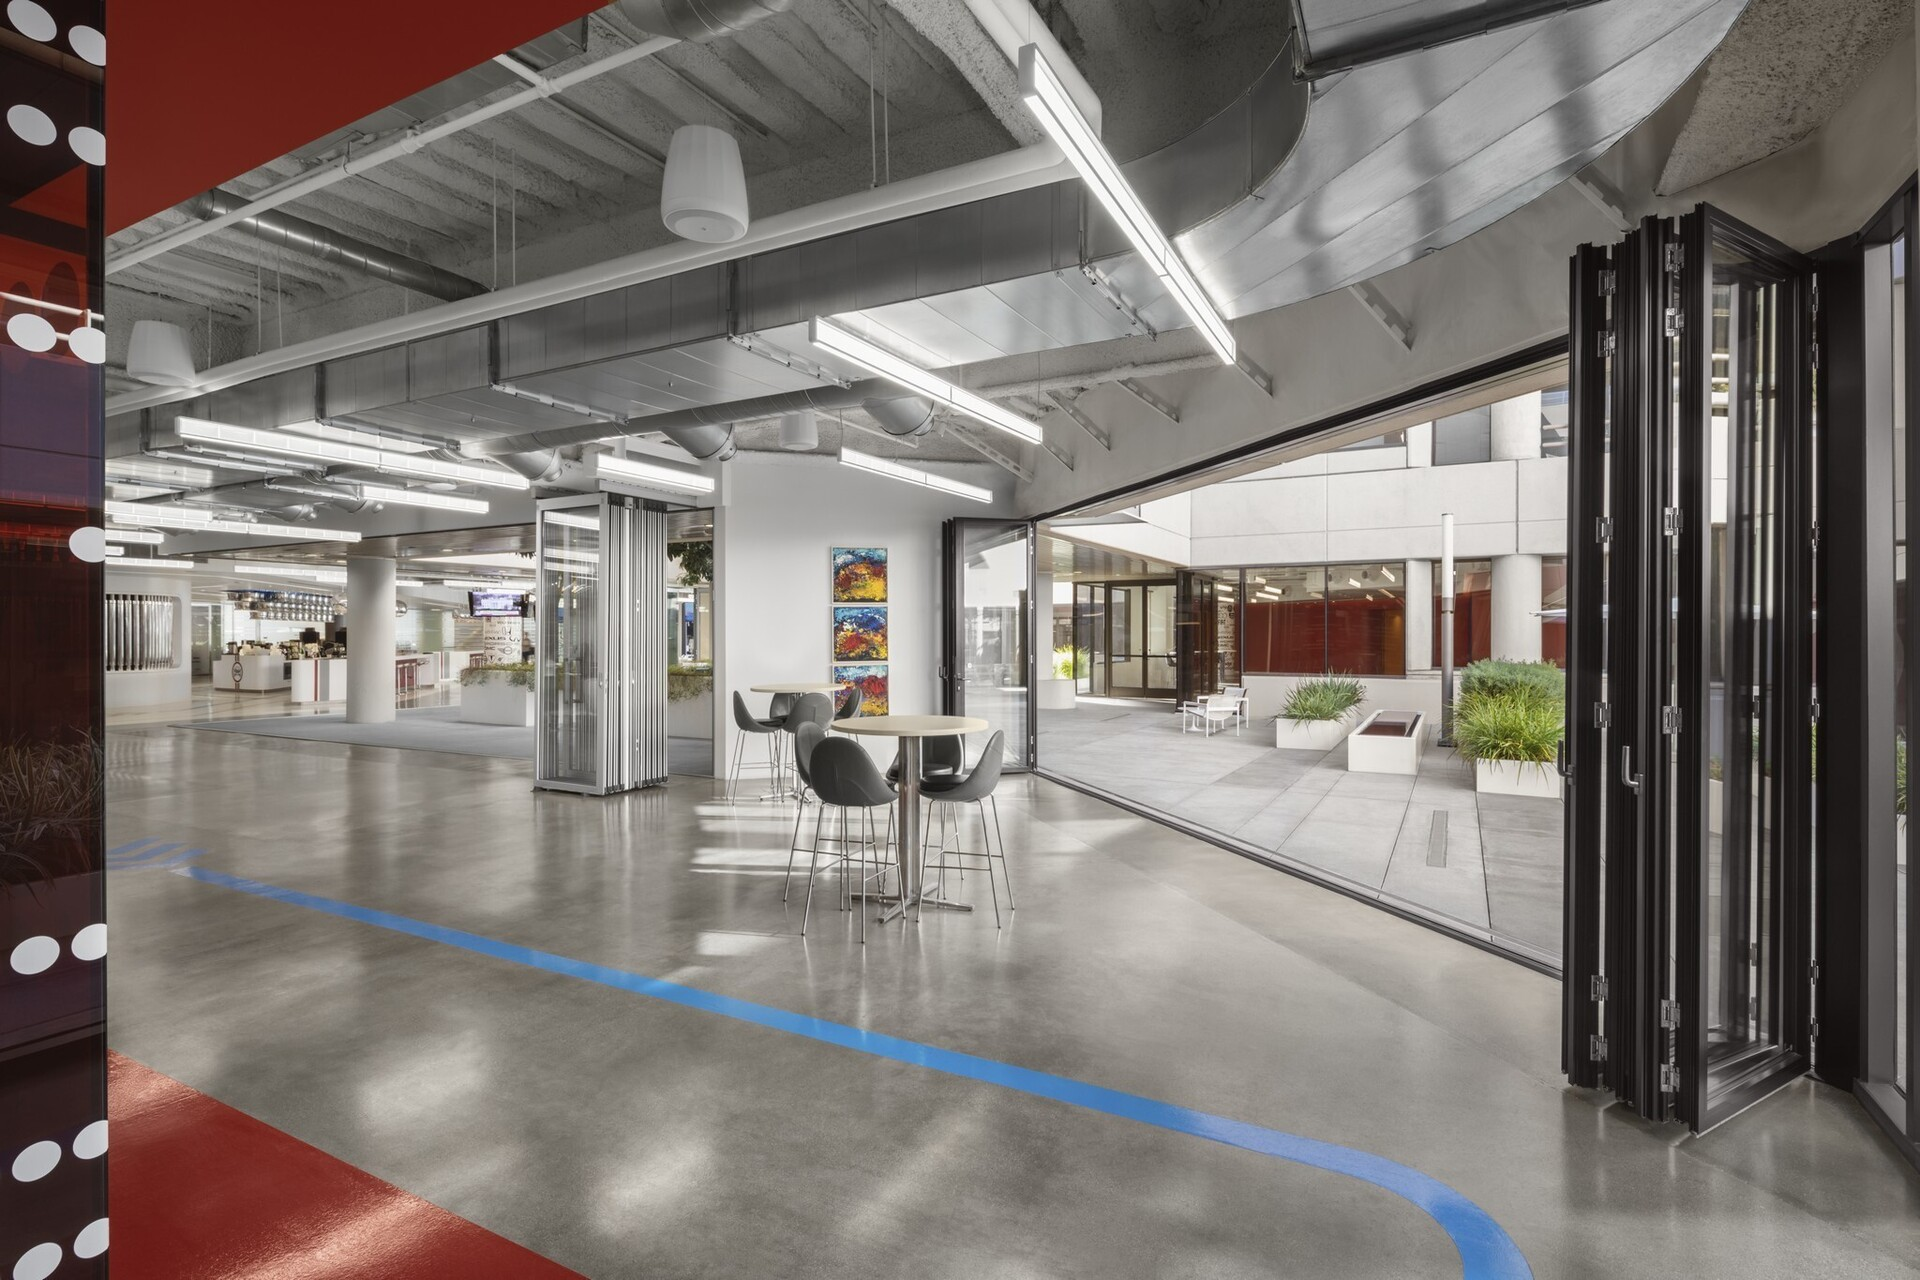 """To achieve a highly collaborative, highly flexible workspace, they gutted both floors. """"The biggest reason they took this space,"""" Mitchell elaborates, """"had to do with the indoor/outdoor possibilities."""" Those possibilities were maximized by eliminating most of the fixed glazing walls around the central courtyard on the ground floor, making it a contiguous part of the first floor, the light-filled, shining heart of the office. The space opens into to the second floor with 26 conference rooms of various sizes, and an endless selection of seating areas in which to work –couches, café tables, nooks, booths –all bathed in the glow of the central courtyard."""